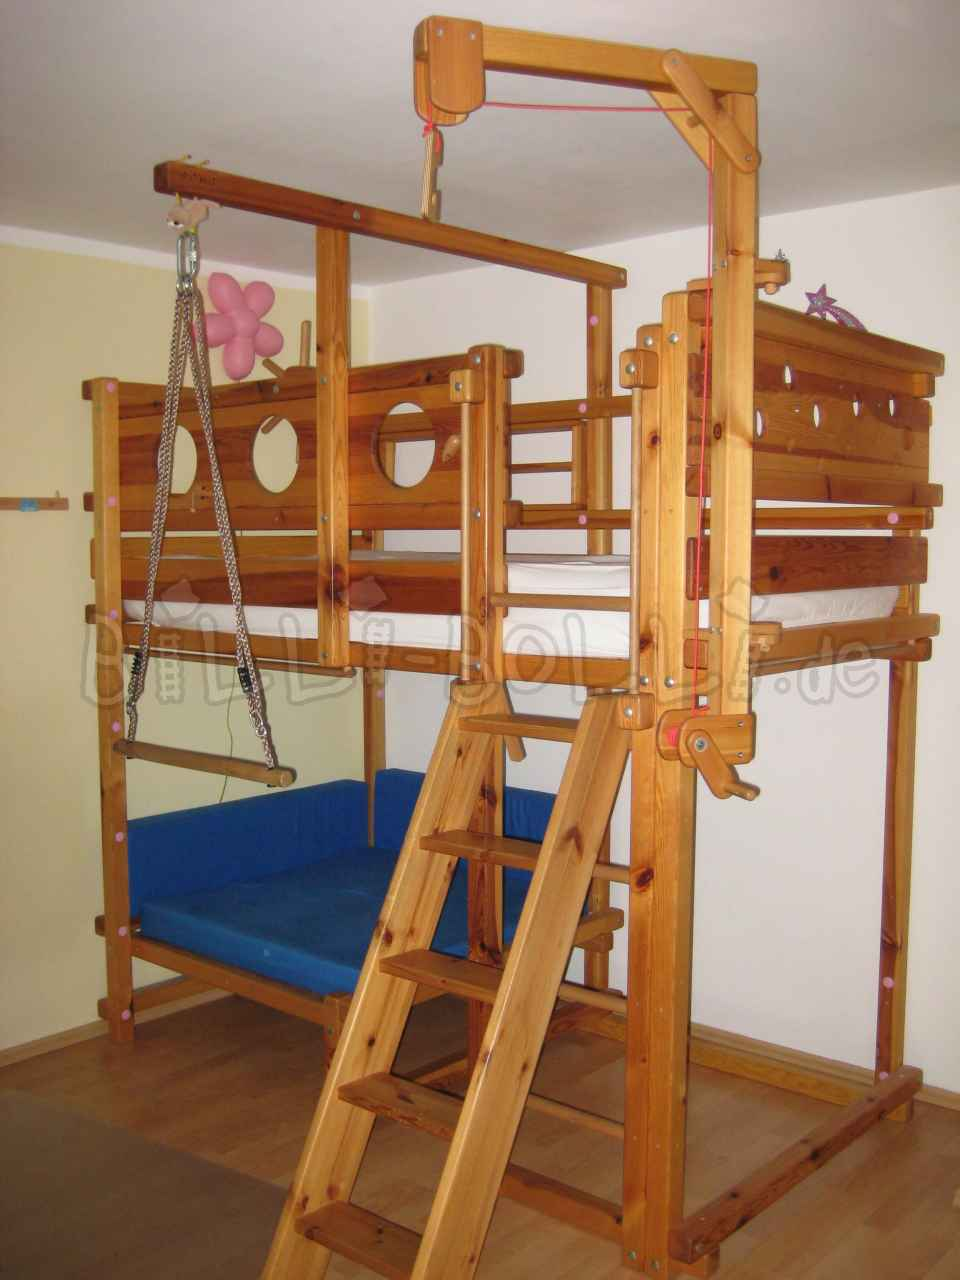 Cuddly corner bed in pine (second hand kids' furniture)